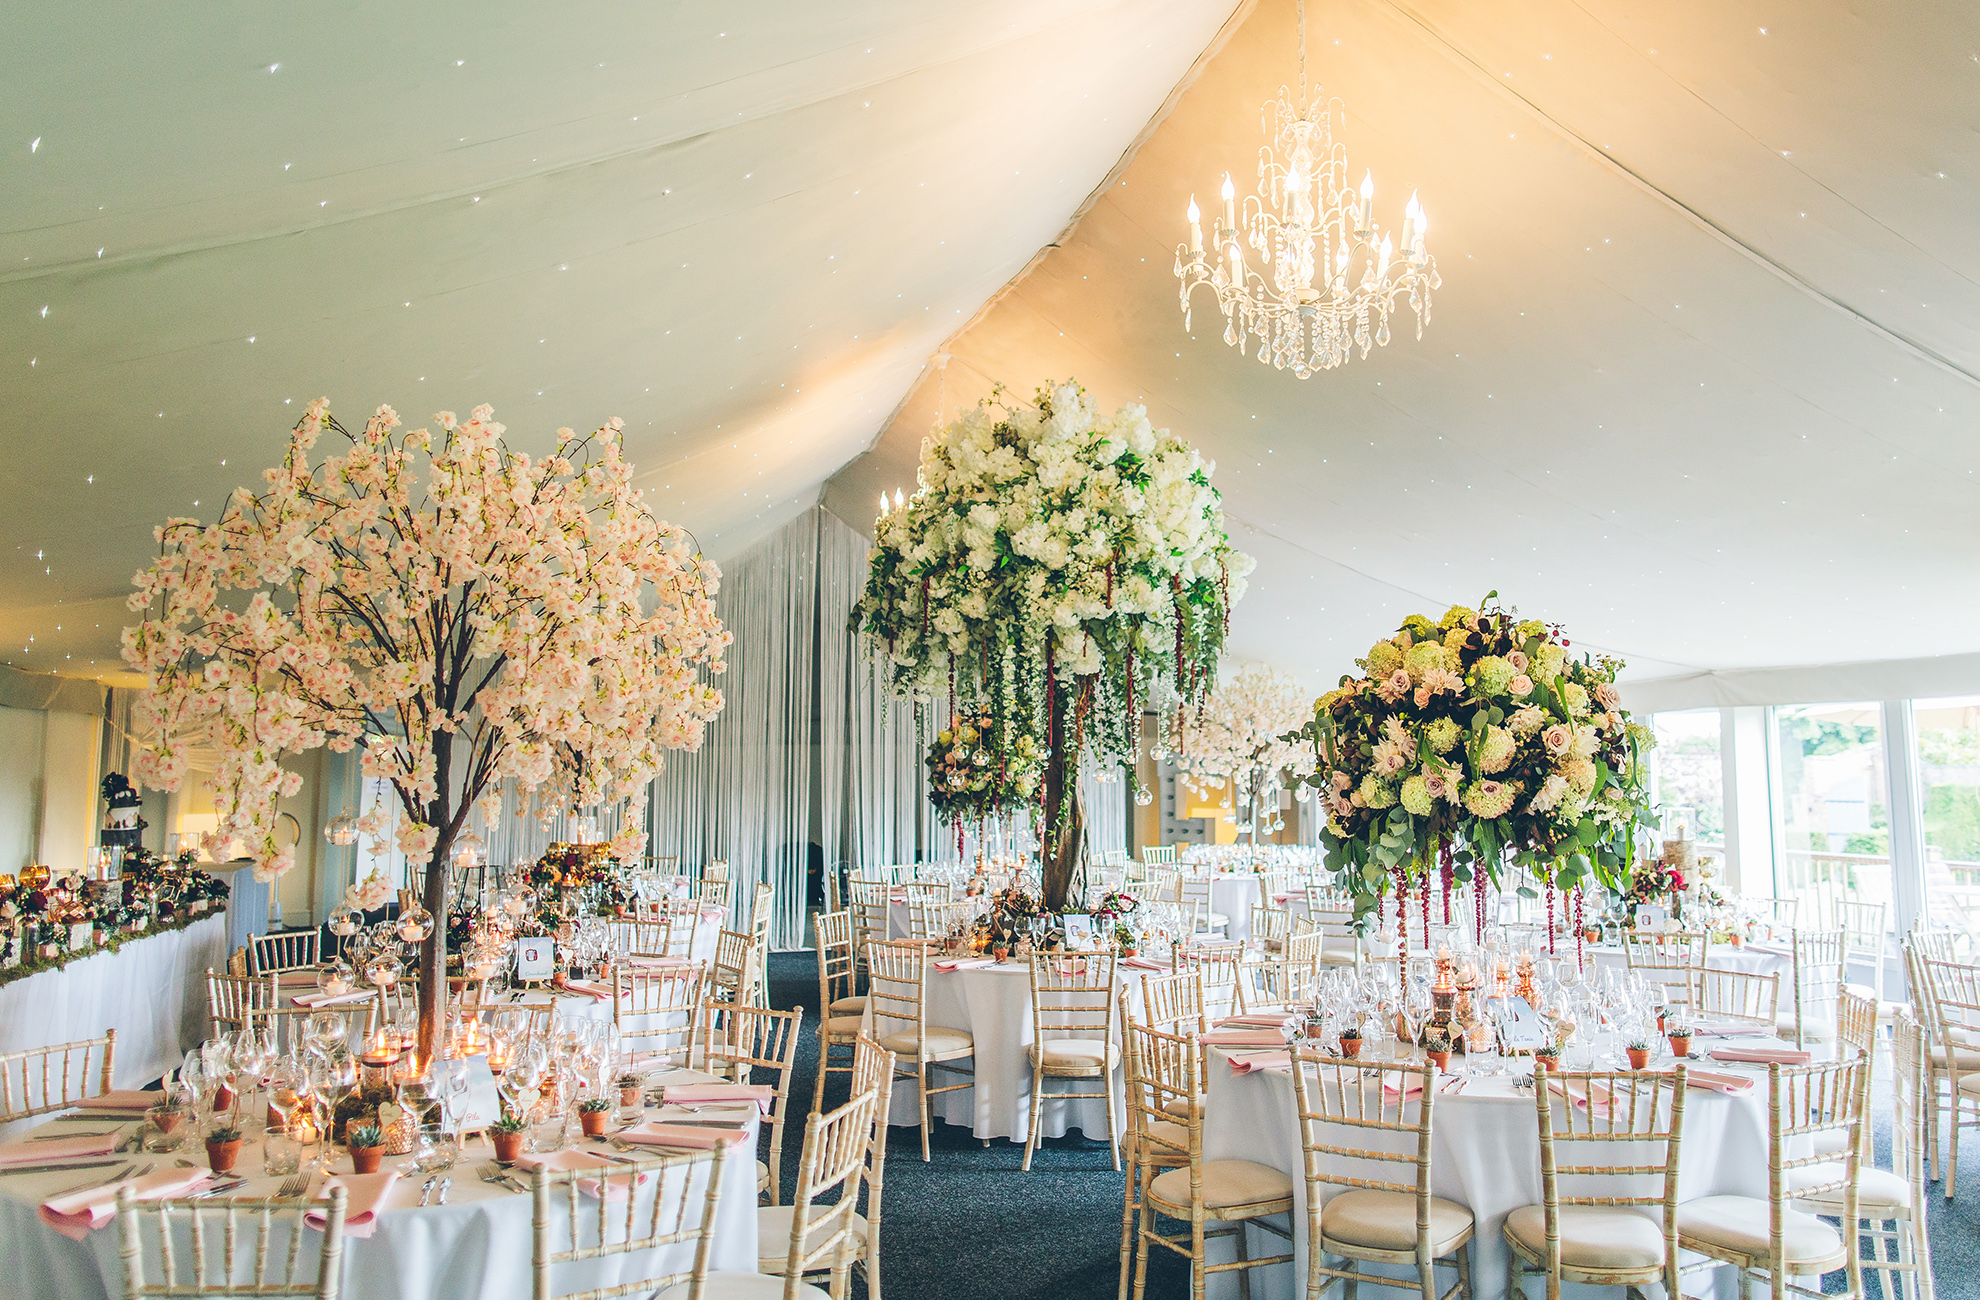 The Pavillion at Combermere Abbey wedding venue is the perfect spot for your wedding reception